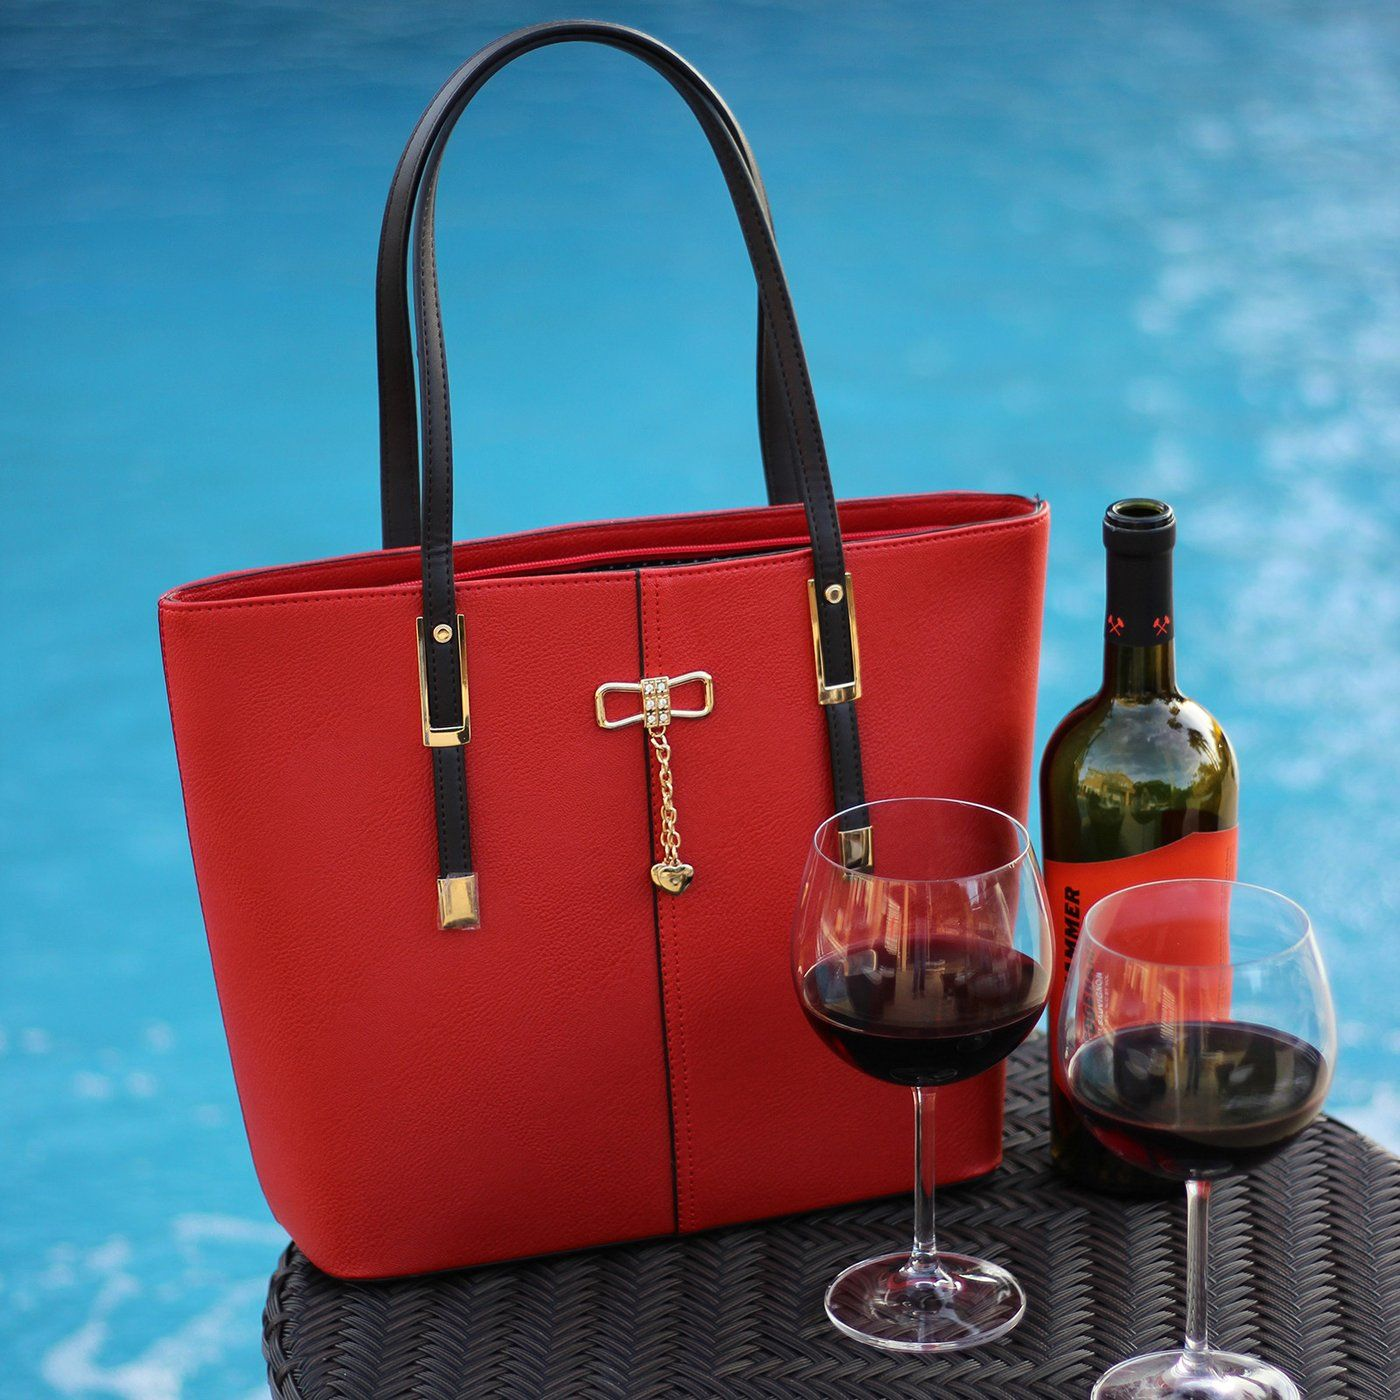 The Red Portovino Wine Purse Allows You To Bring The Party Along Our Red Portovino Is Designed With An Insulated Secret Compartment T Wine Purse Wine Bag Bags